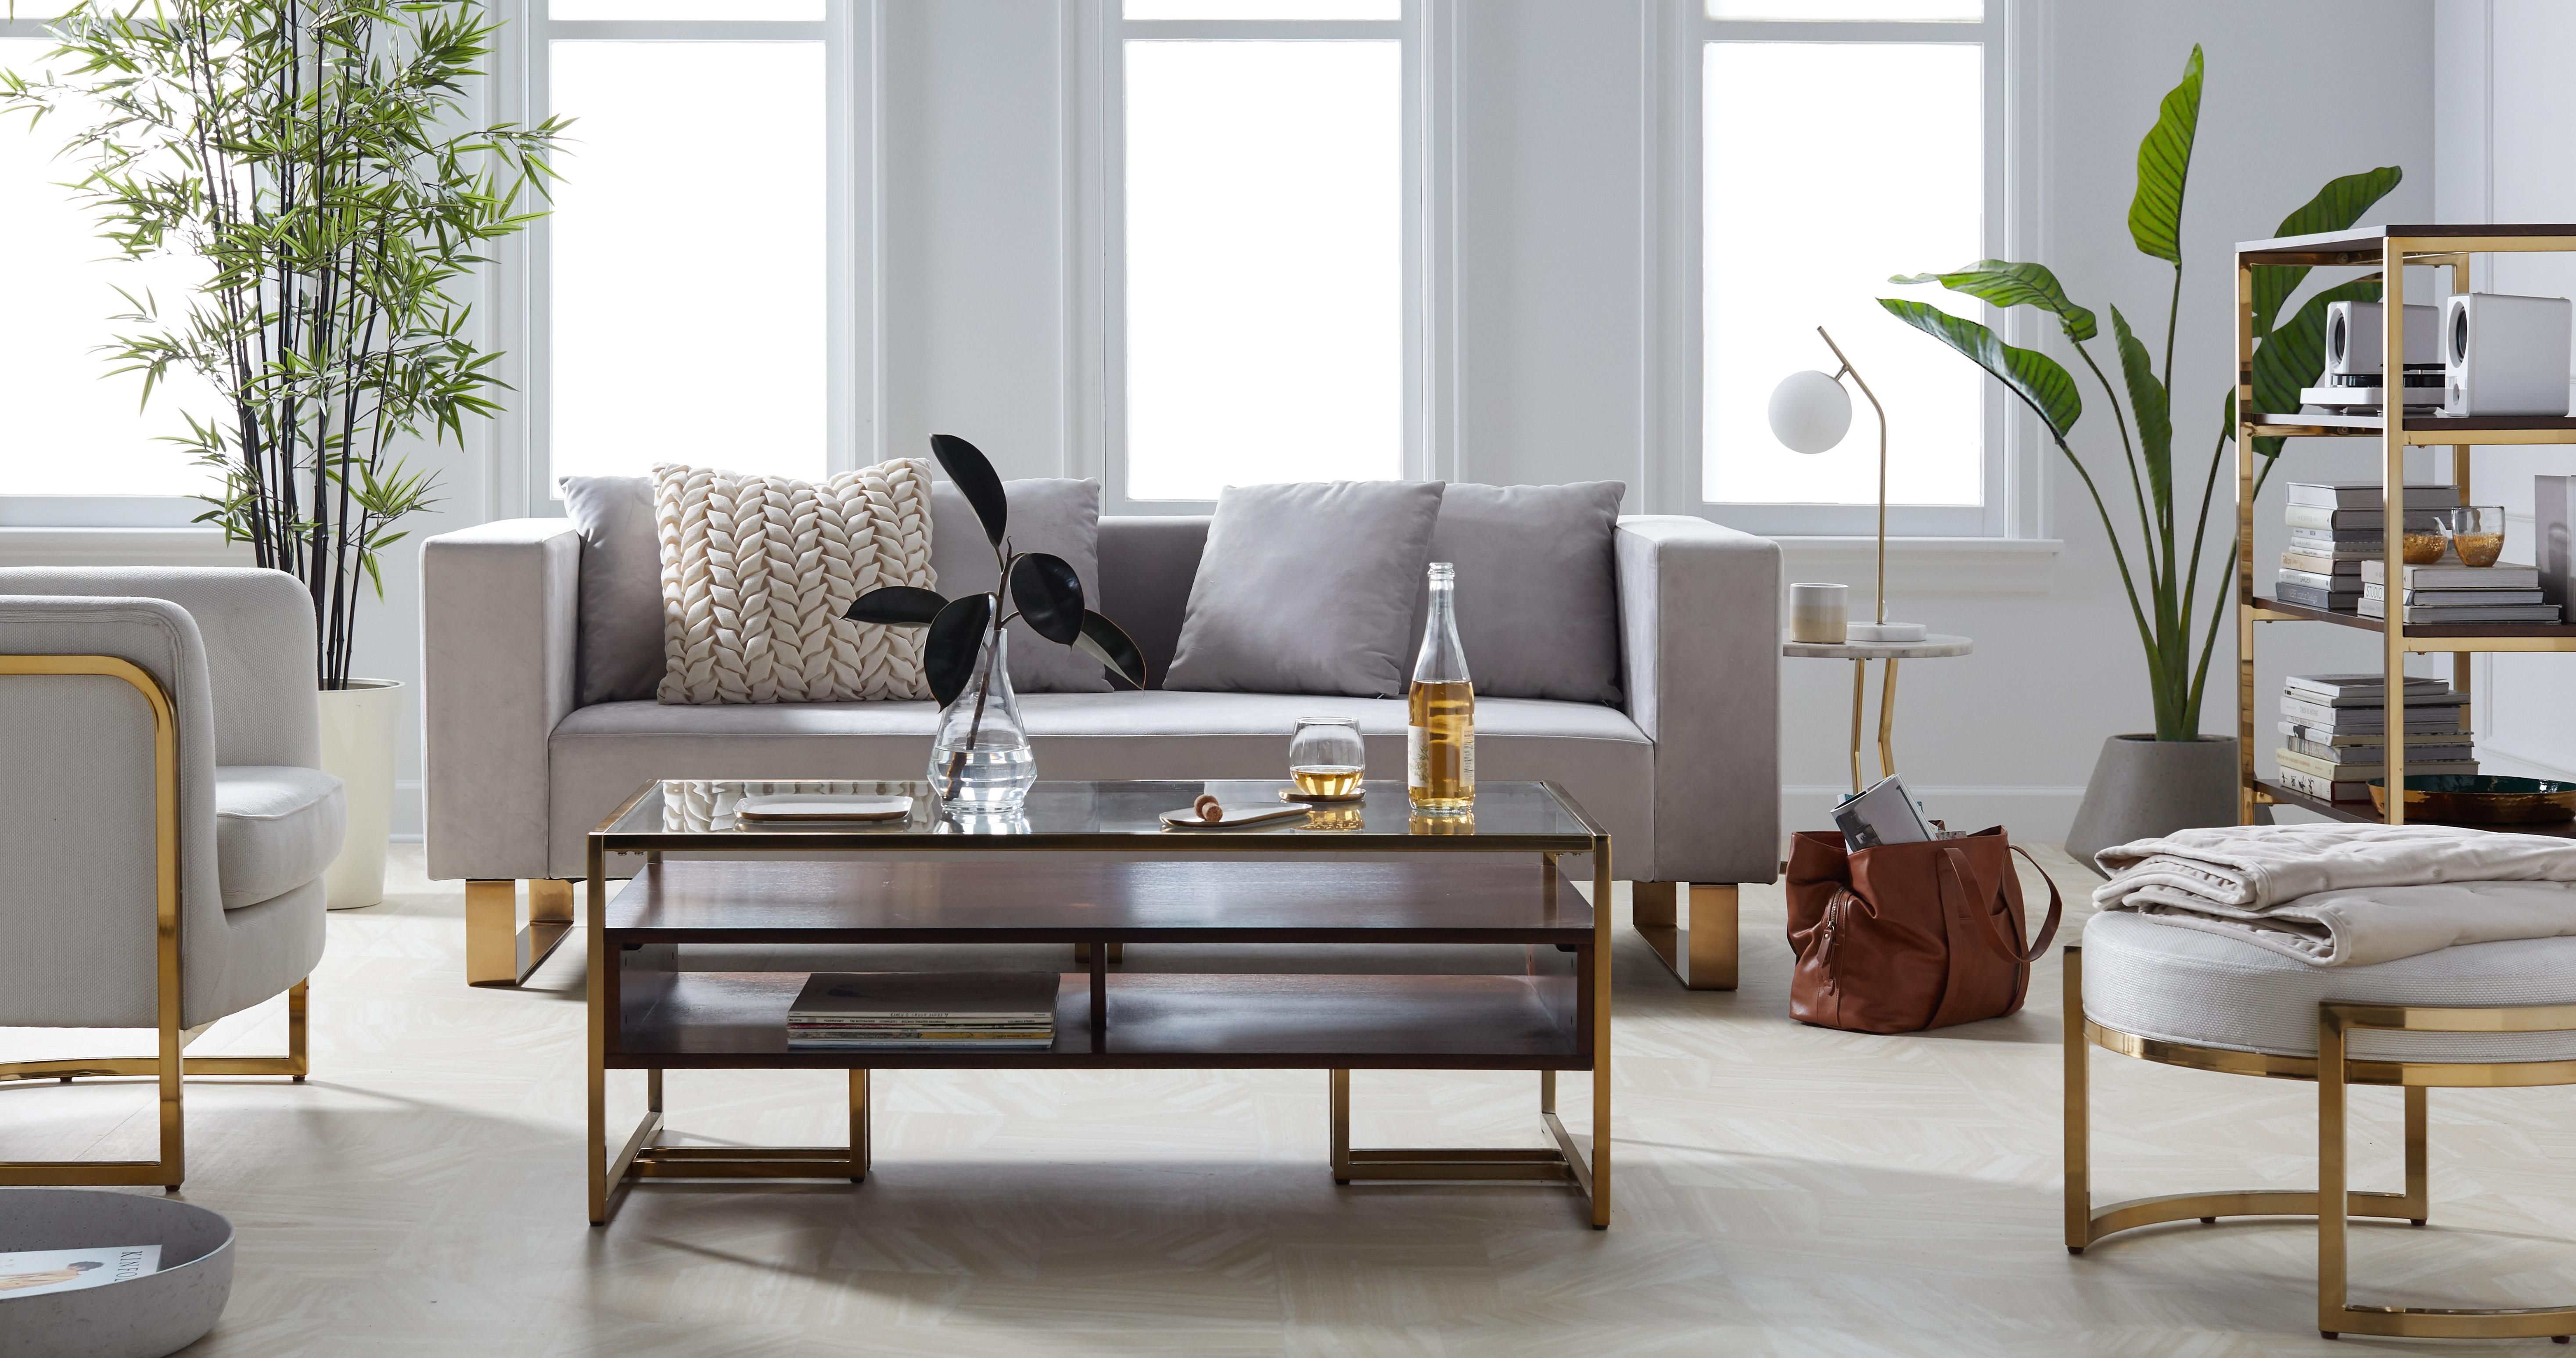 Walmart just launched a modern furniture line and we want to buy everything